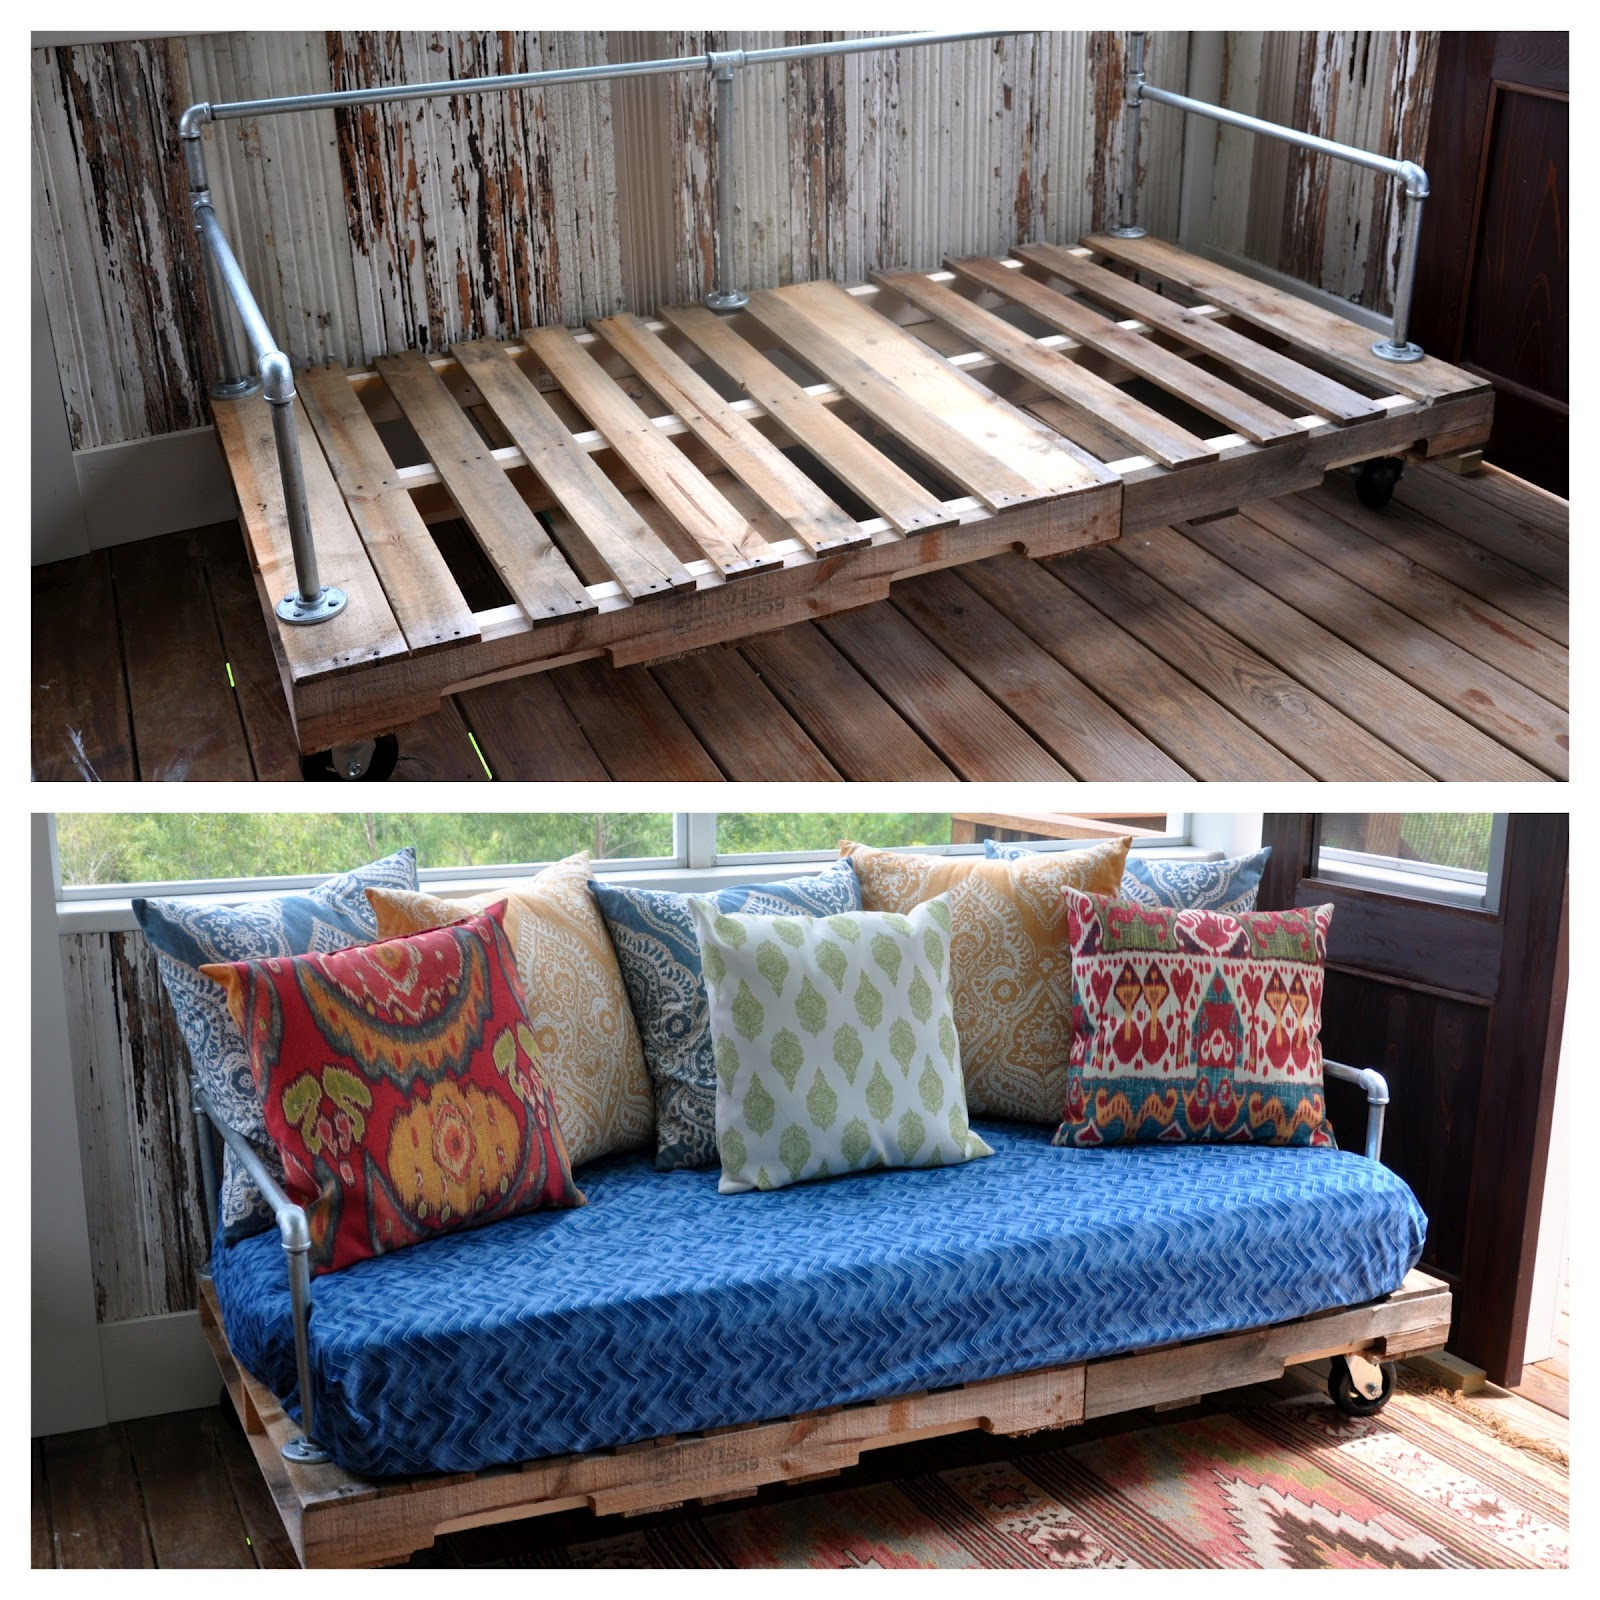 Chairs That Make Into A Bed Foldable Shower Chair My First Pinterest Project Pallet Couch Fishsmith3 39s Blog